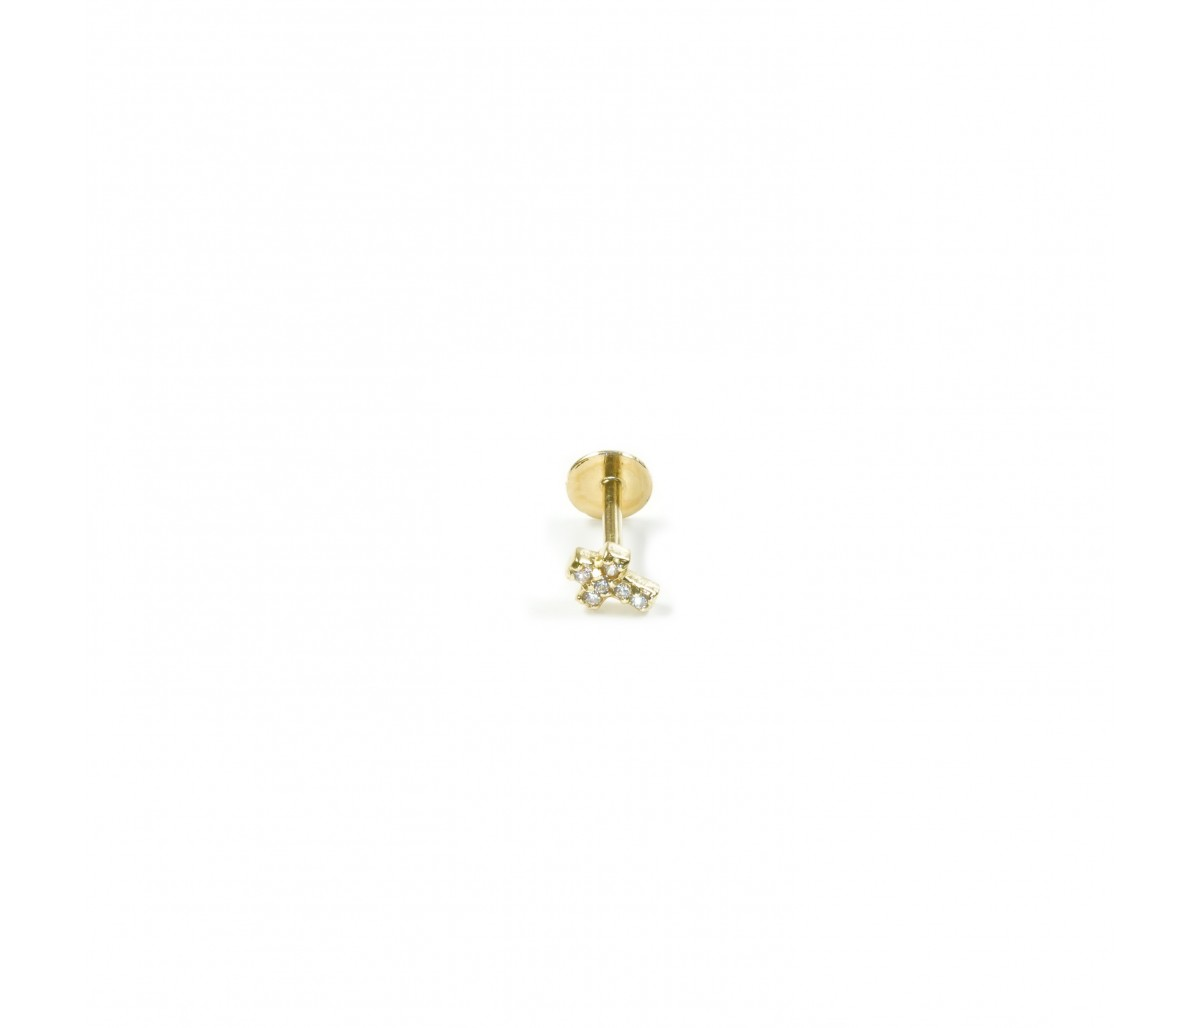 Cruz 18k gold piercing